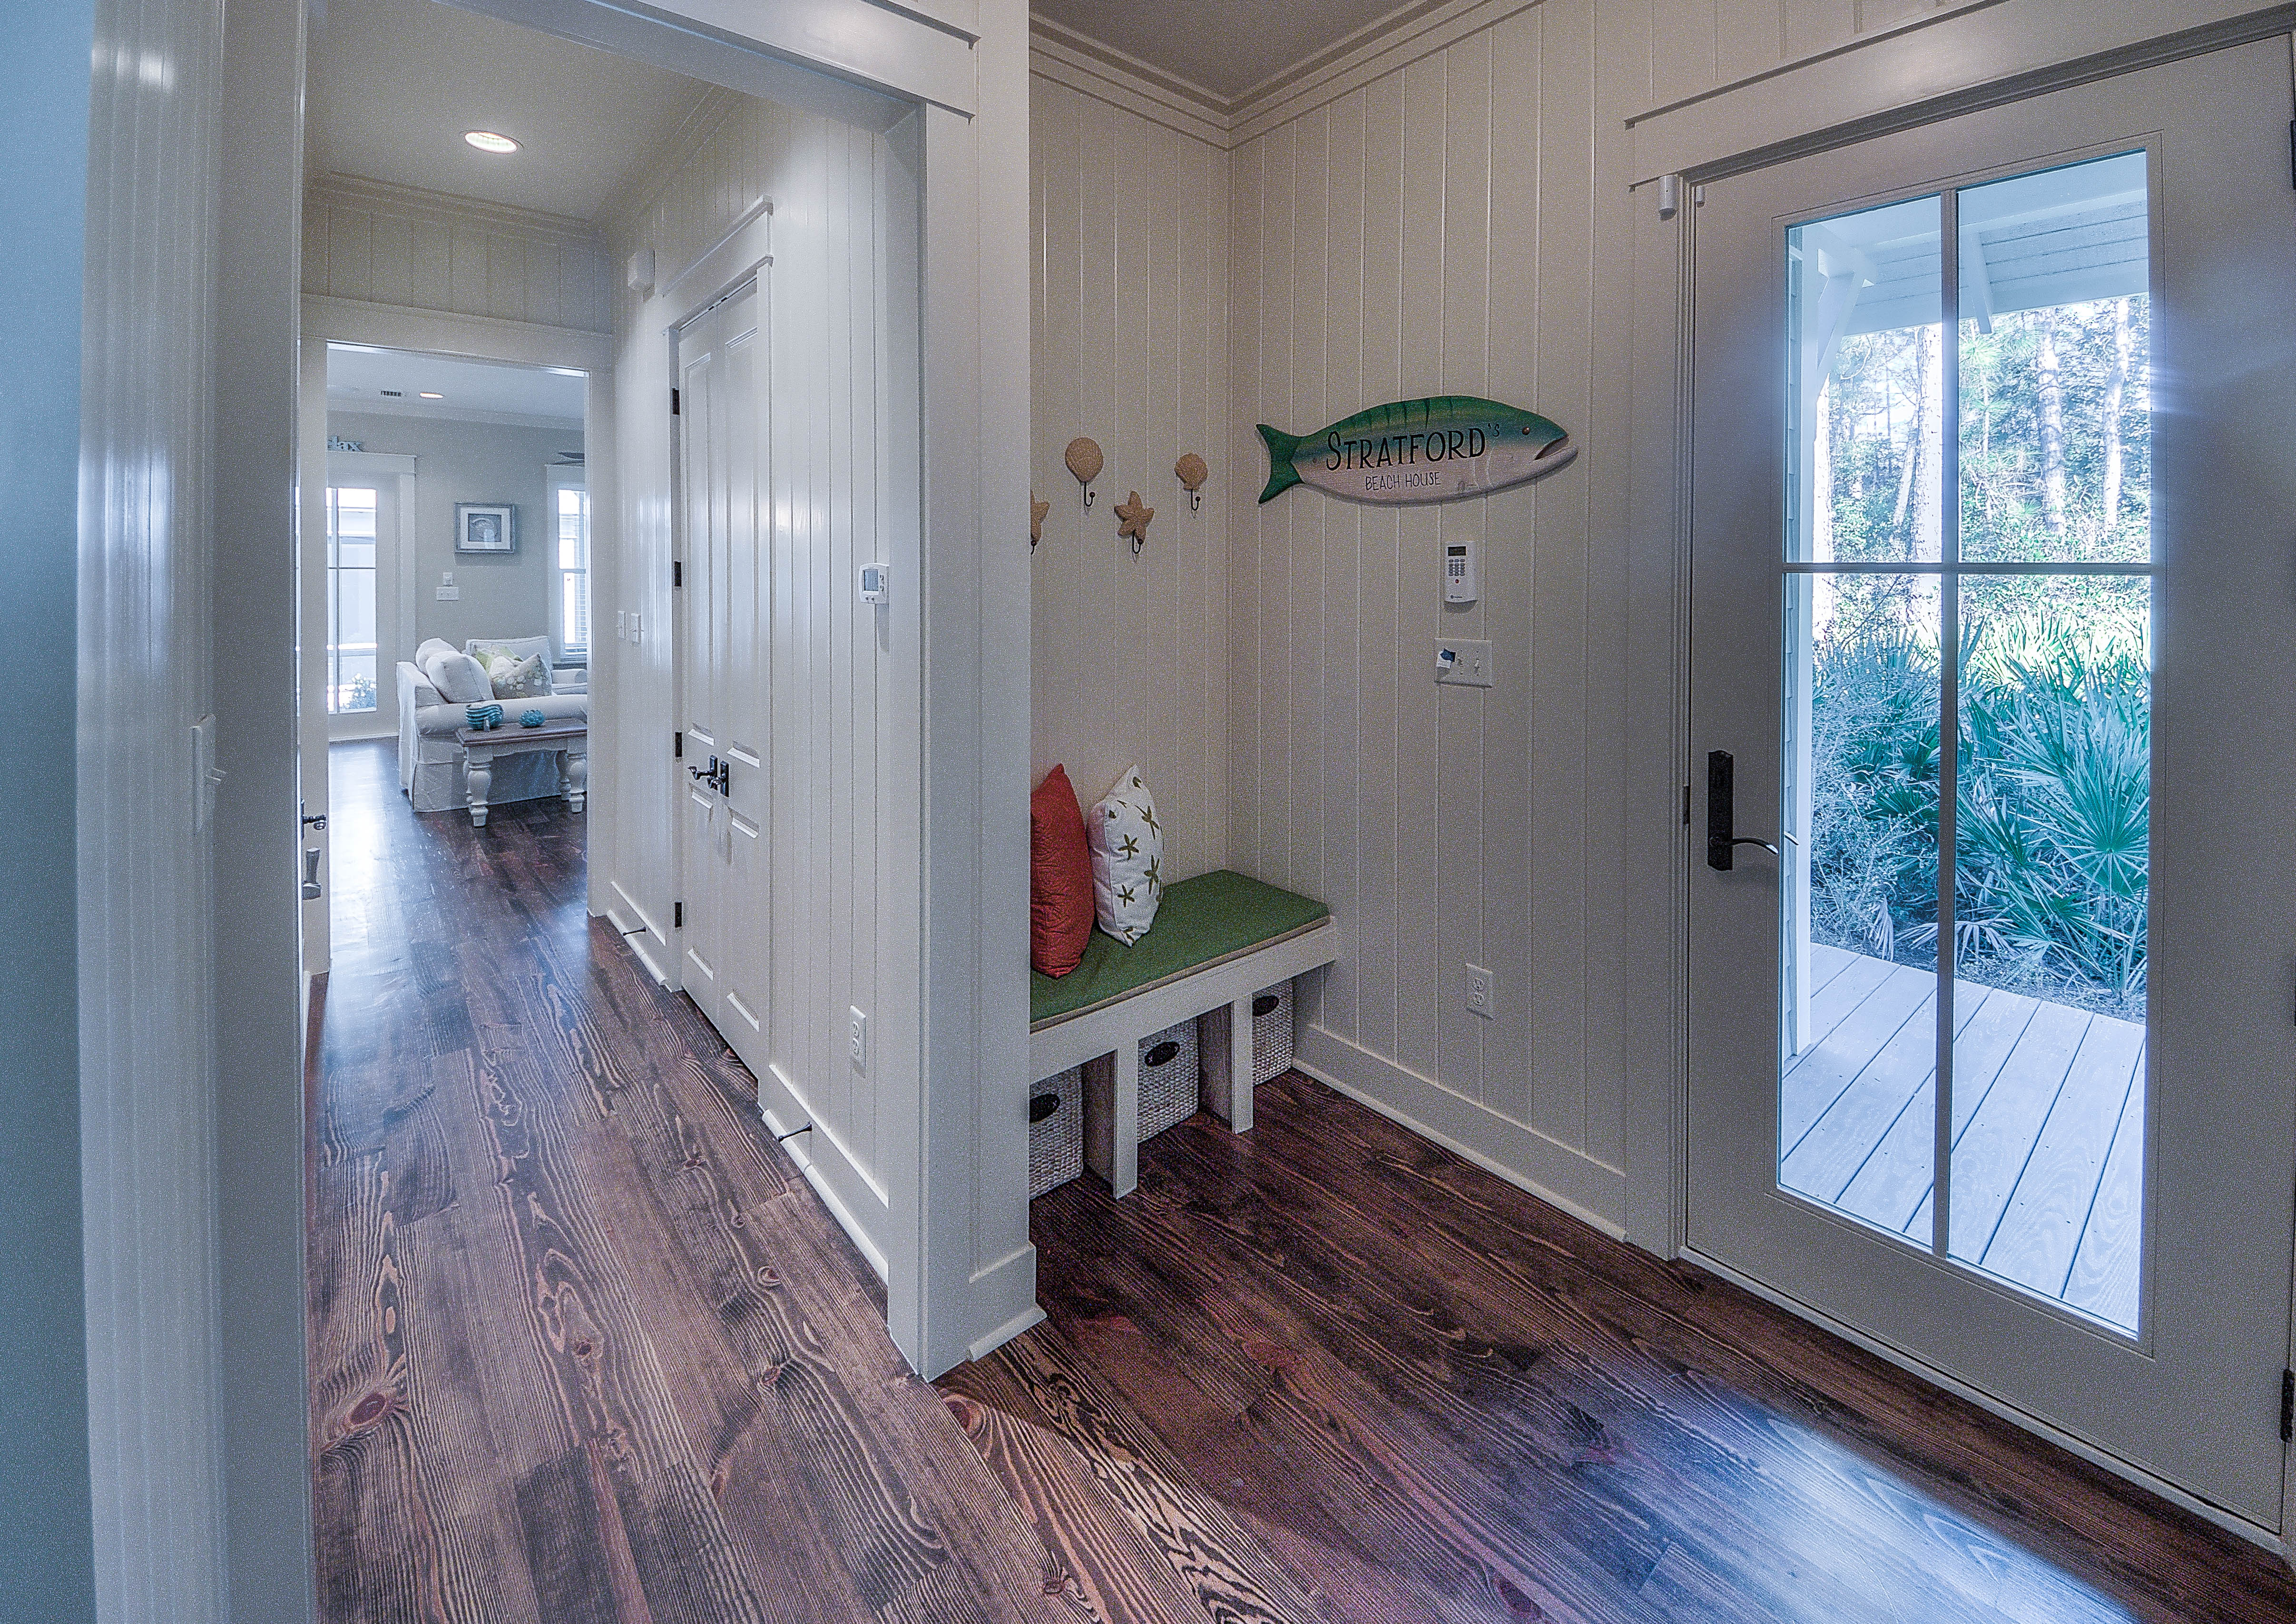 Entryway off of side of house with garage access door, first floor king master bedroom (at front of house) and hallway with powder and laundry room